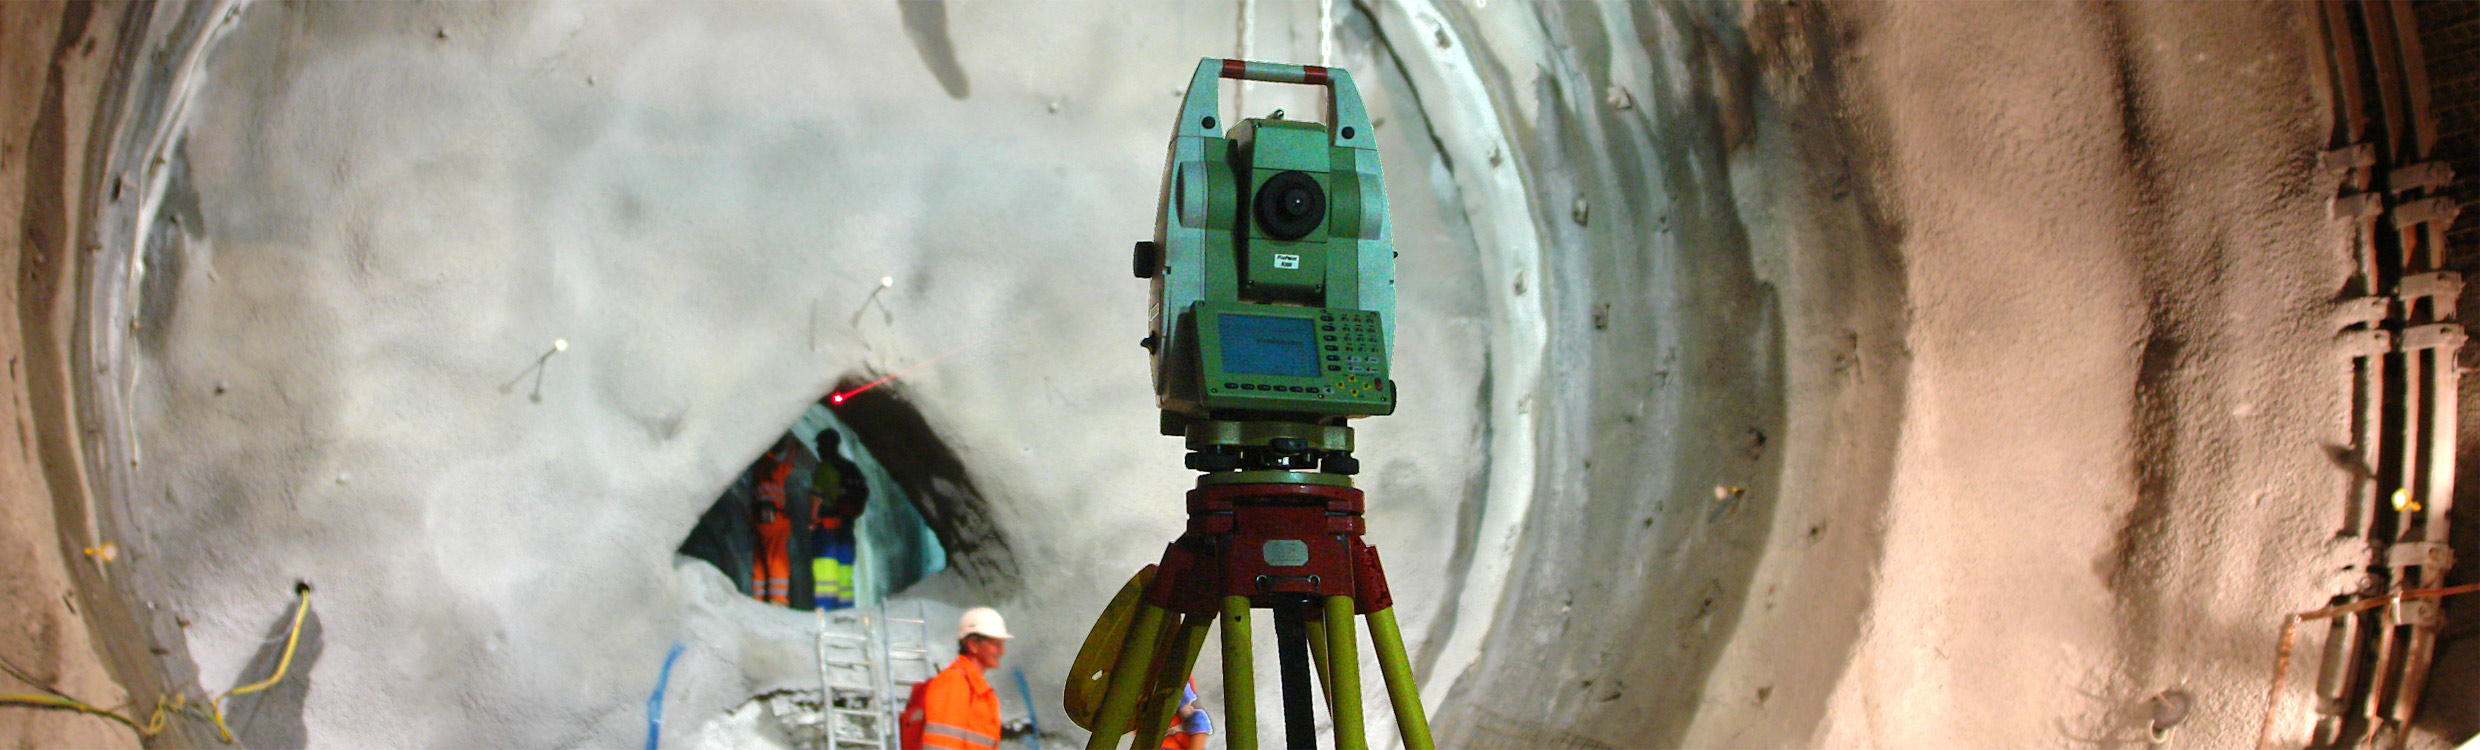 Gotthard Tunnel - Leica Geosystems Heavy Construction Solutions